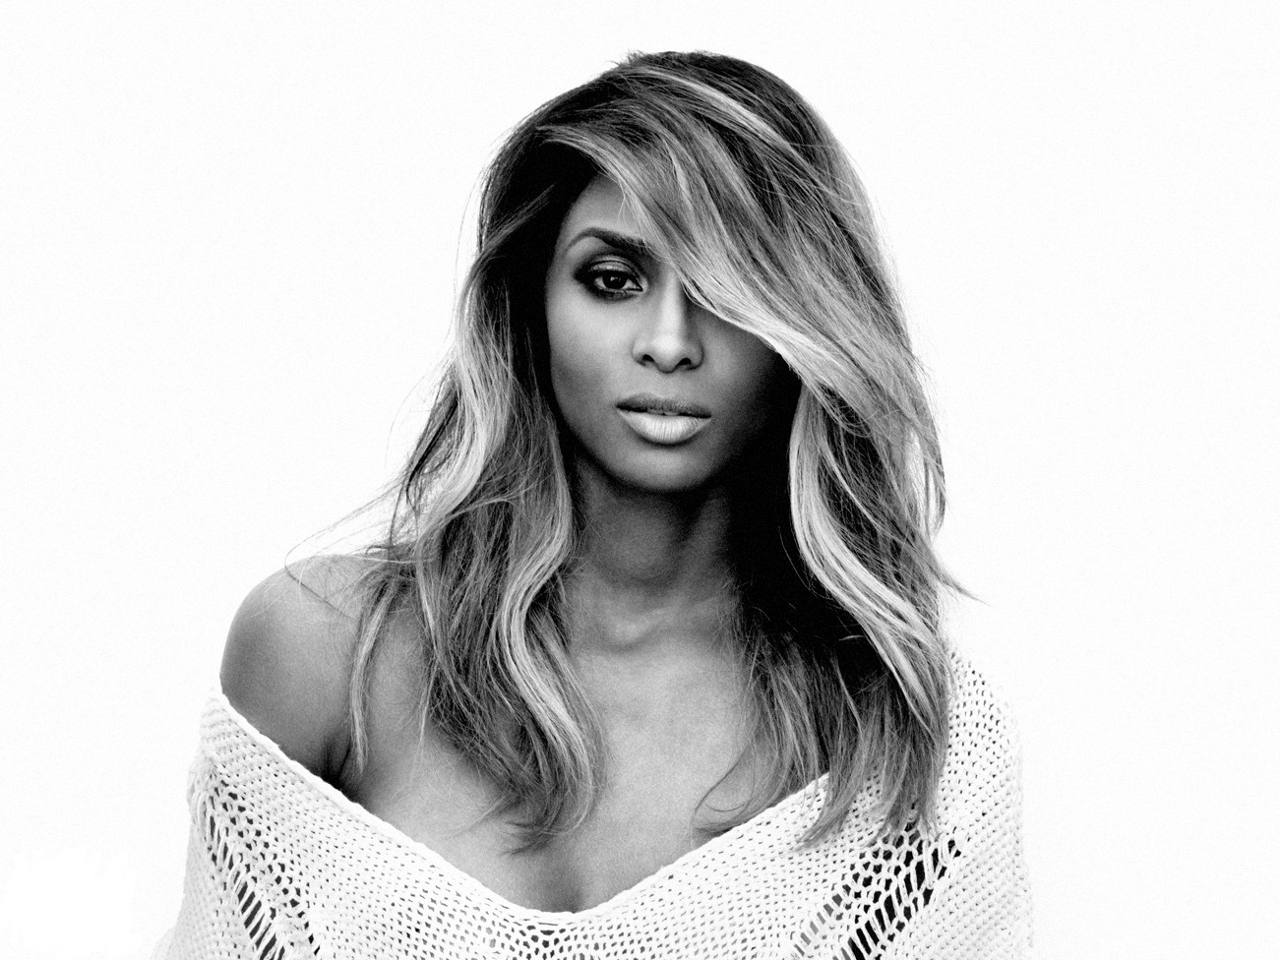 ciara-one-woman-army-promo-ciara-32480599-1280-960